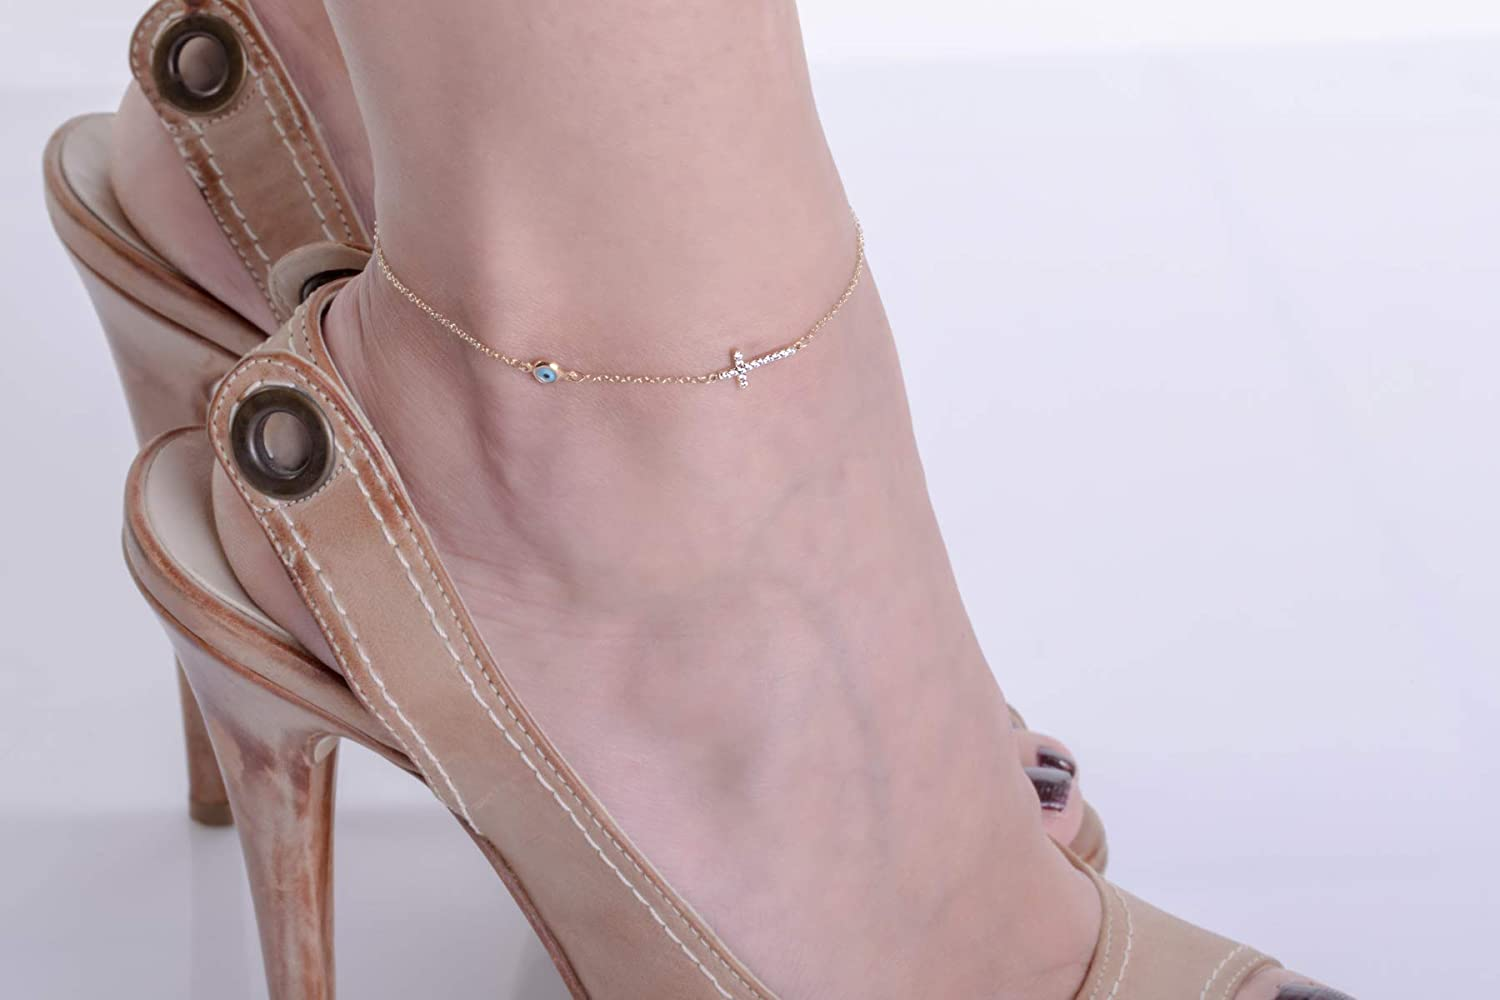 Bridesmaid gift Gold Anklet for Women Body chain Evil eye cross anklet Solid gold anklet Solid gold evil eye Rose evil eye Anklet